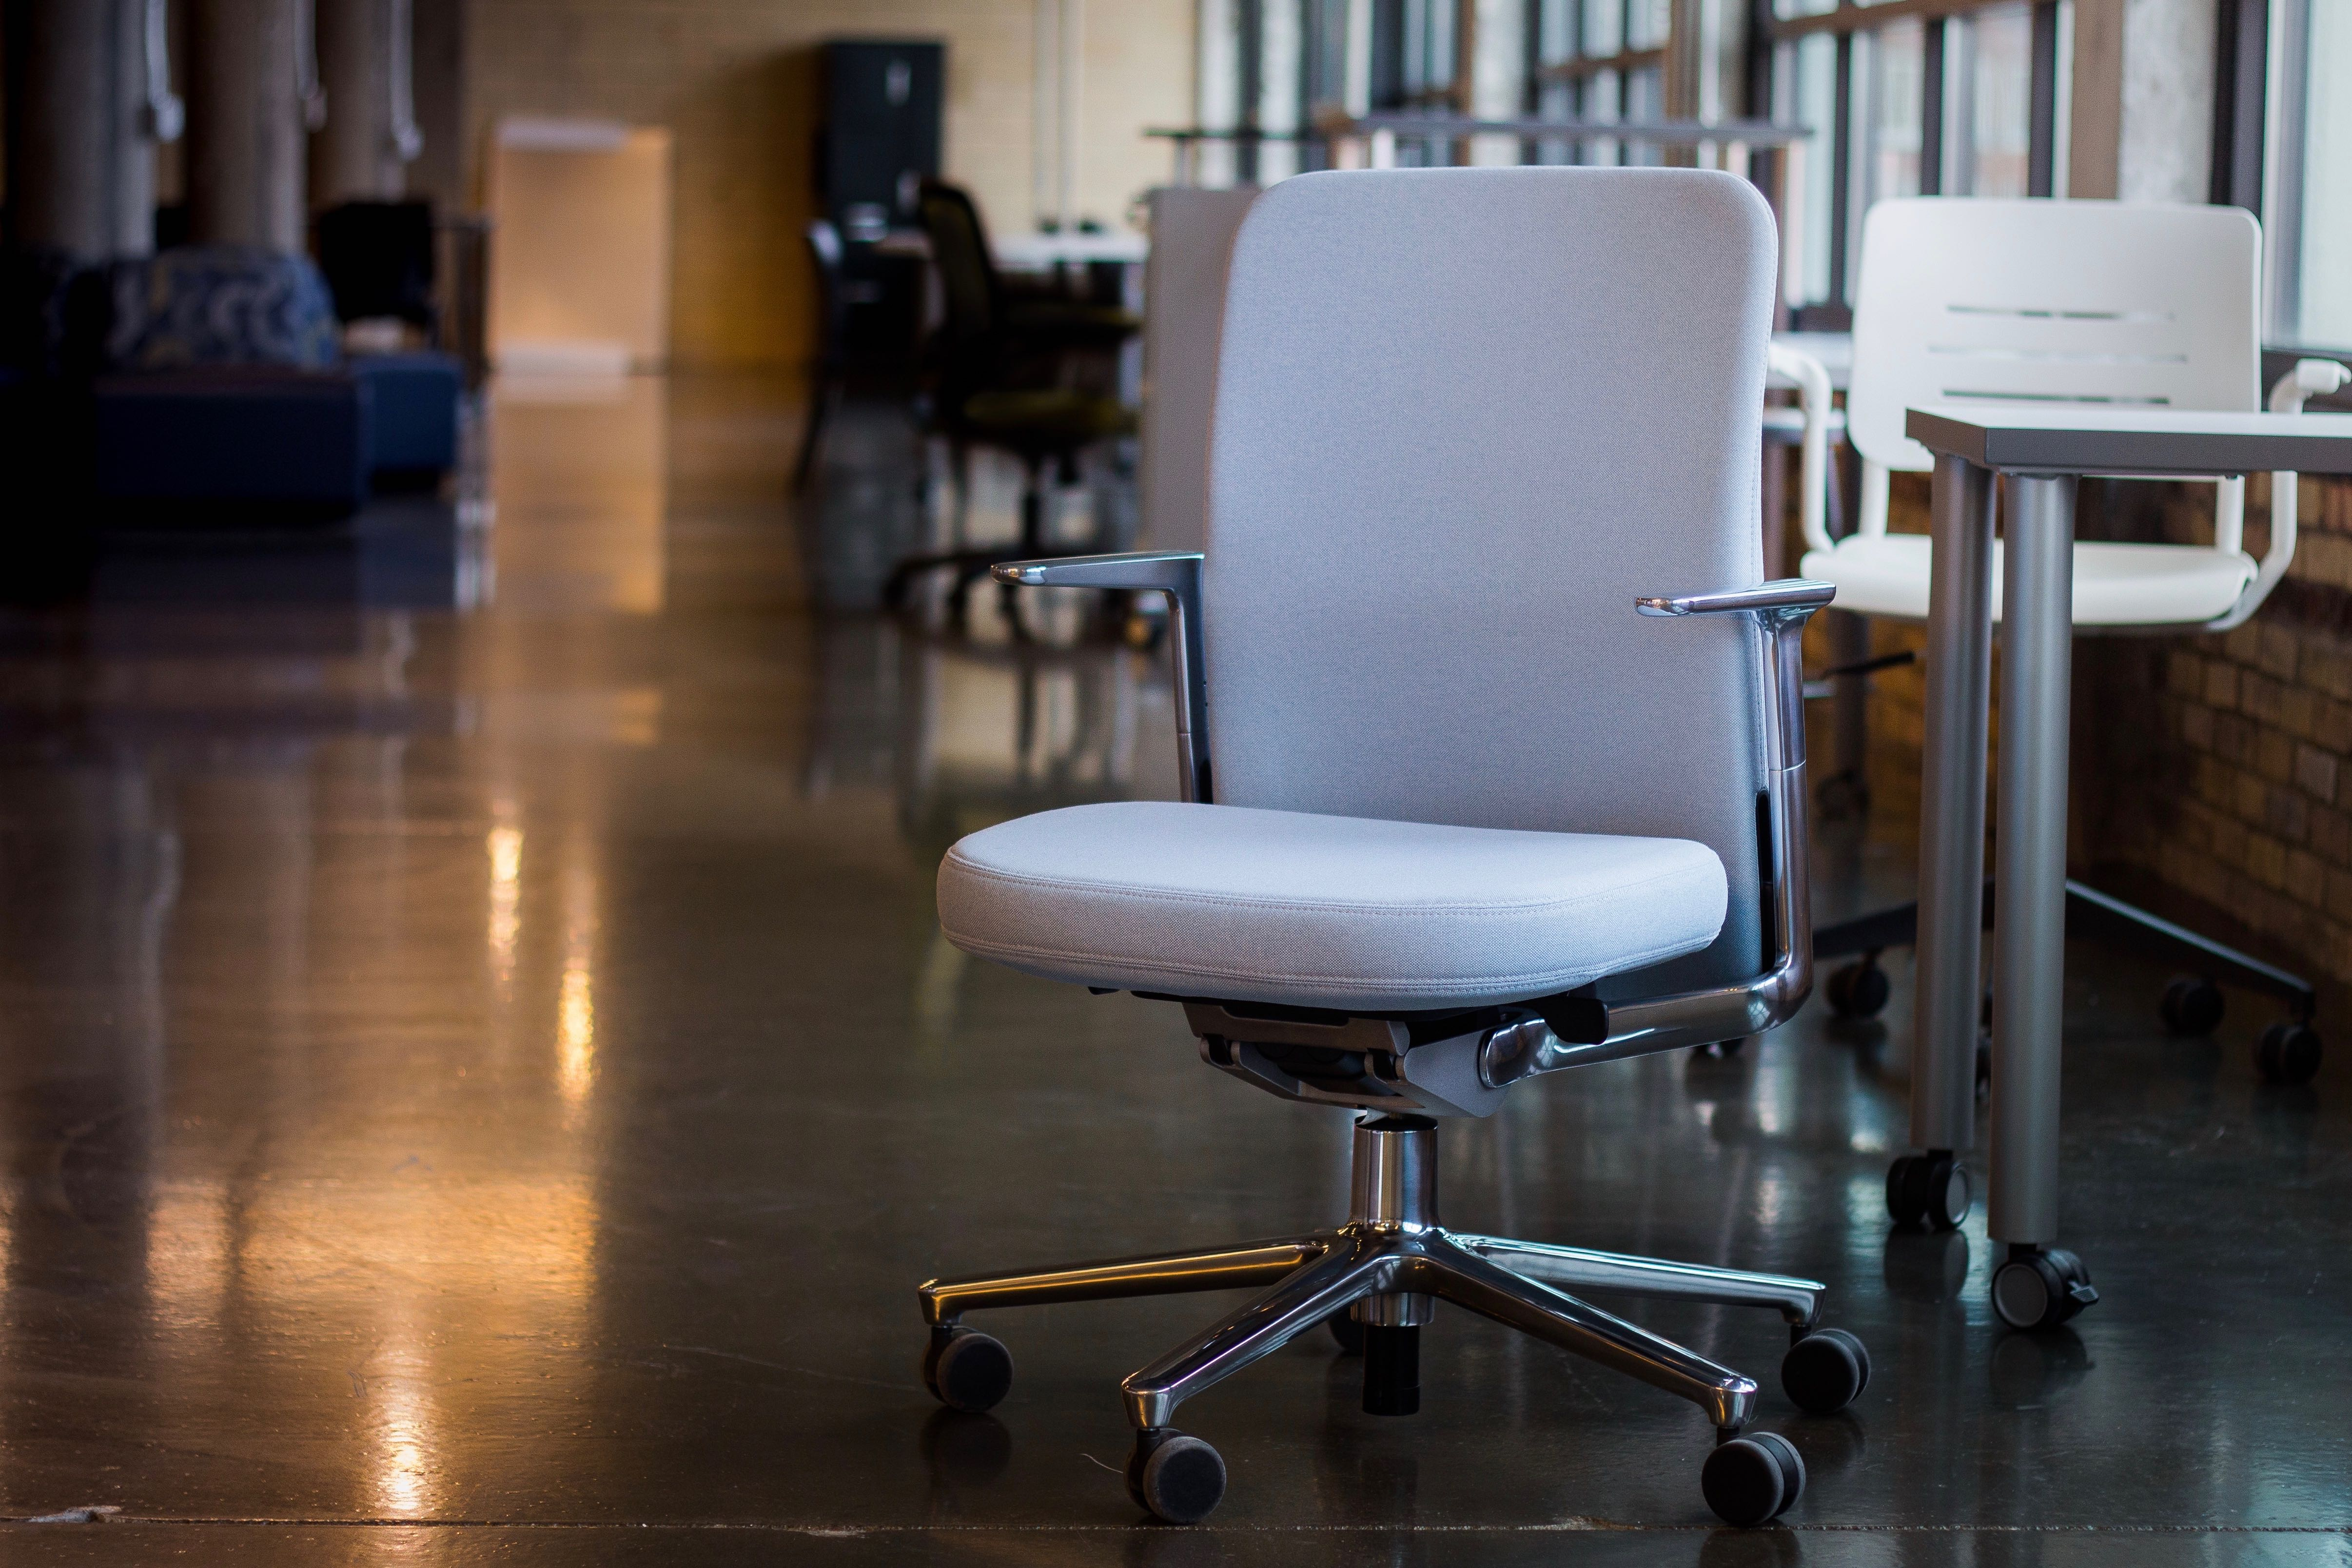 office chair review cb2 orange living with vitra s pacific jony ive choice for any more complimentary to the campus aesthetics and sensibilities putting one in your own probably won t help you invent next iphone